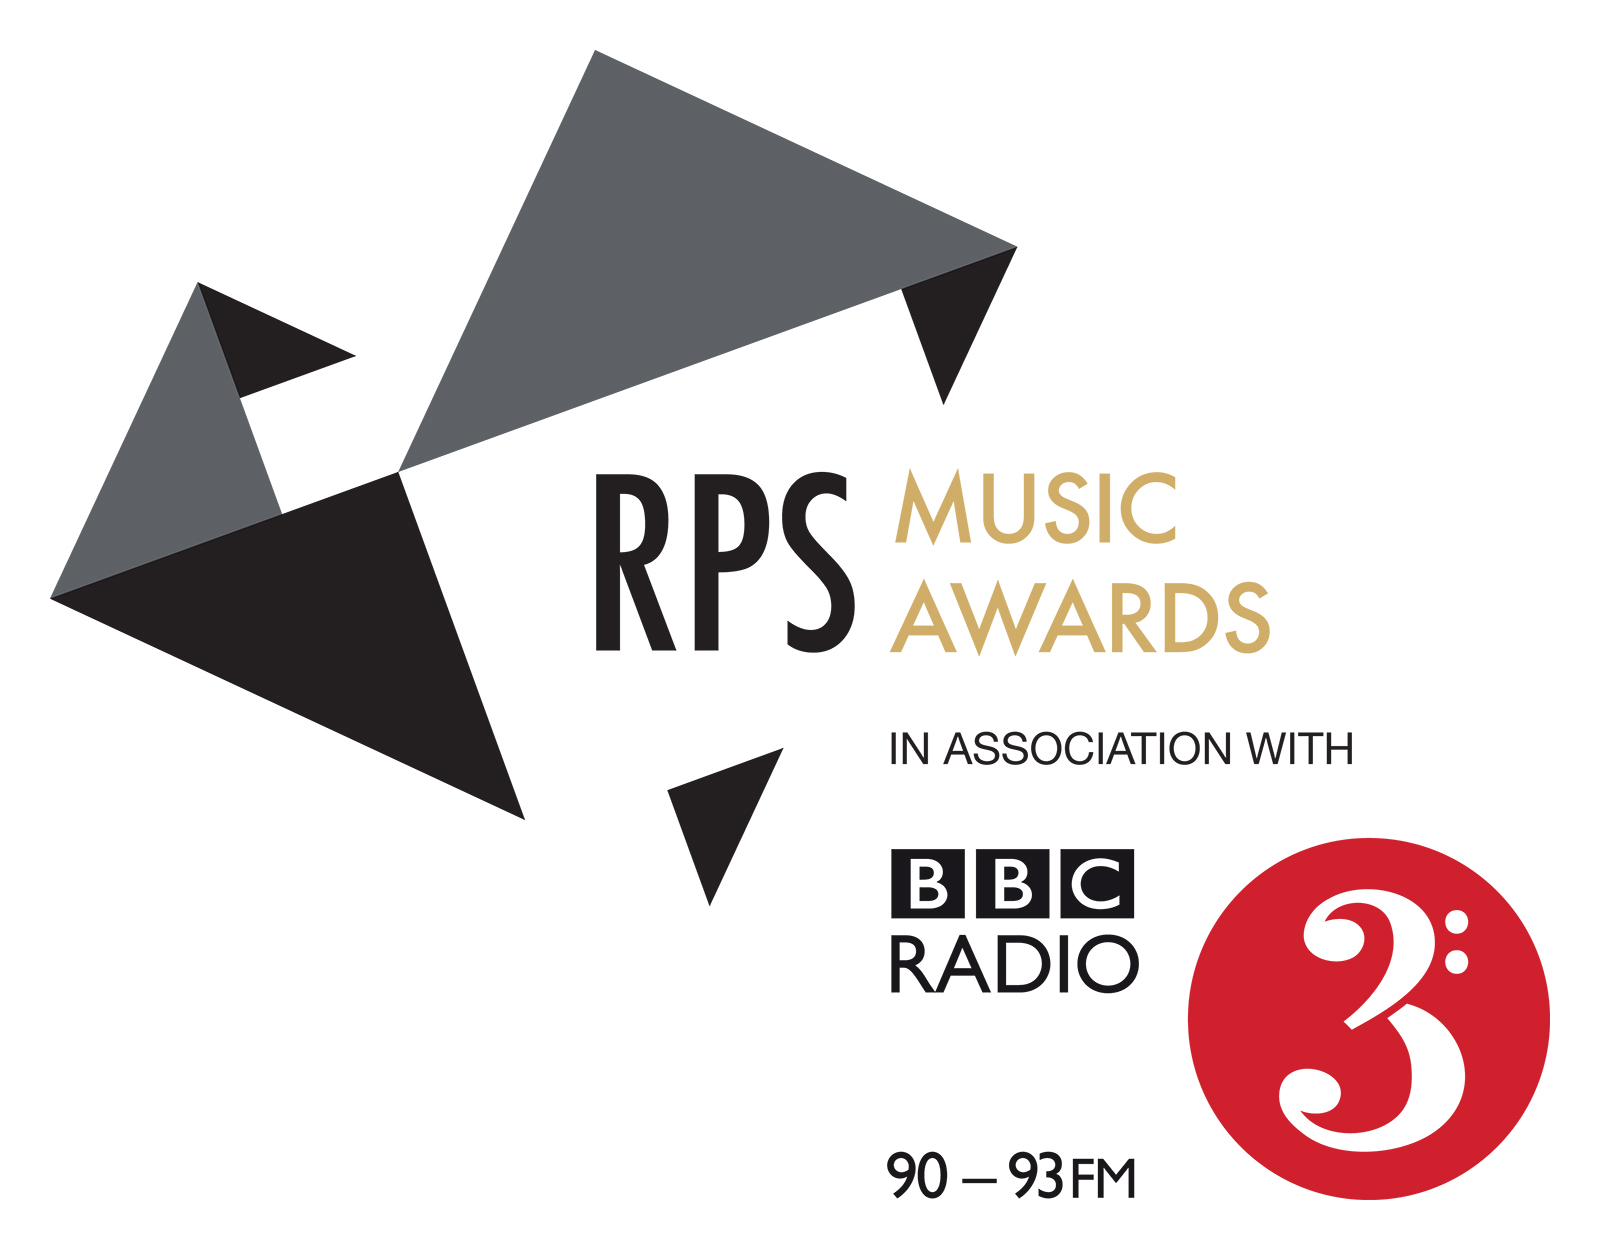 RPS_Awards_BBC_logo copy